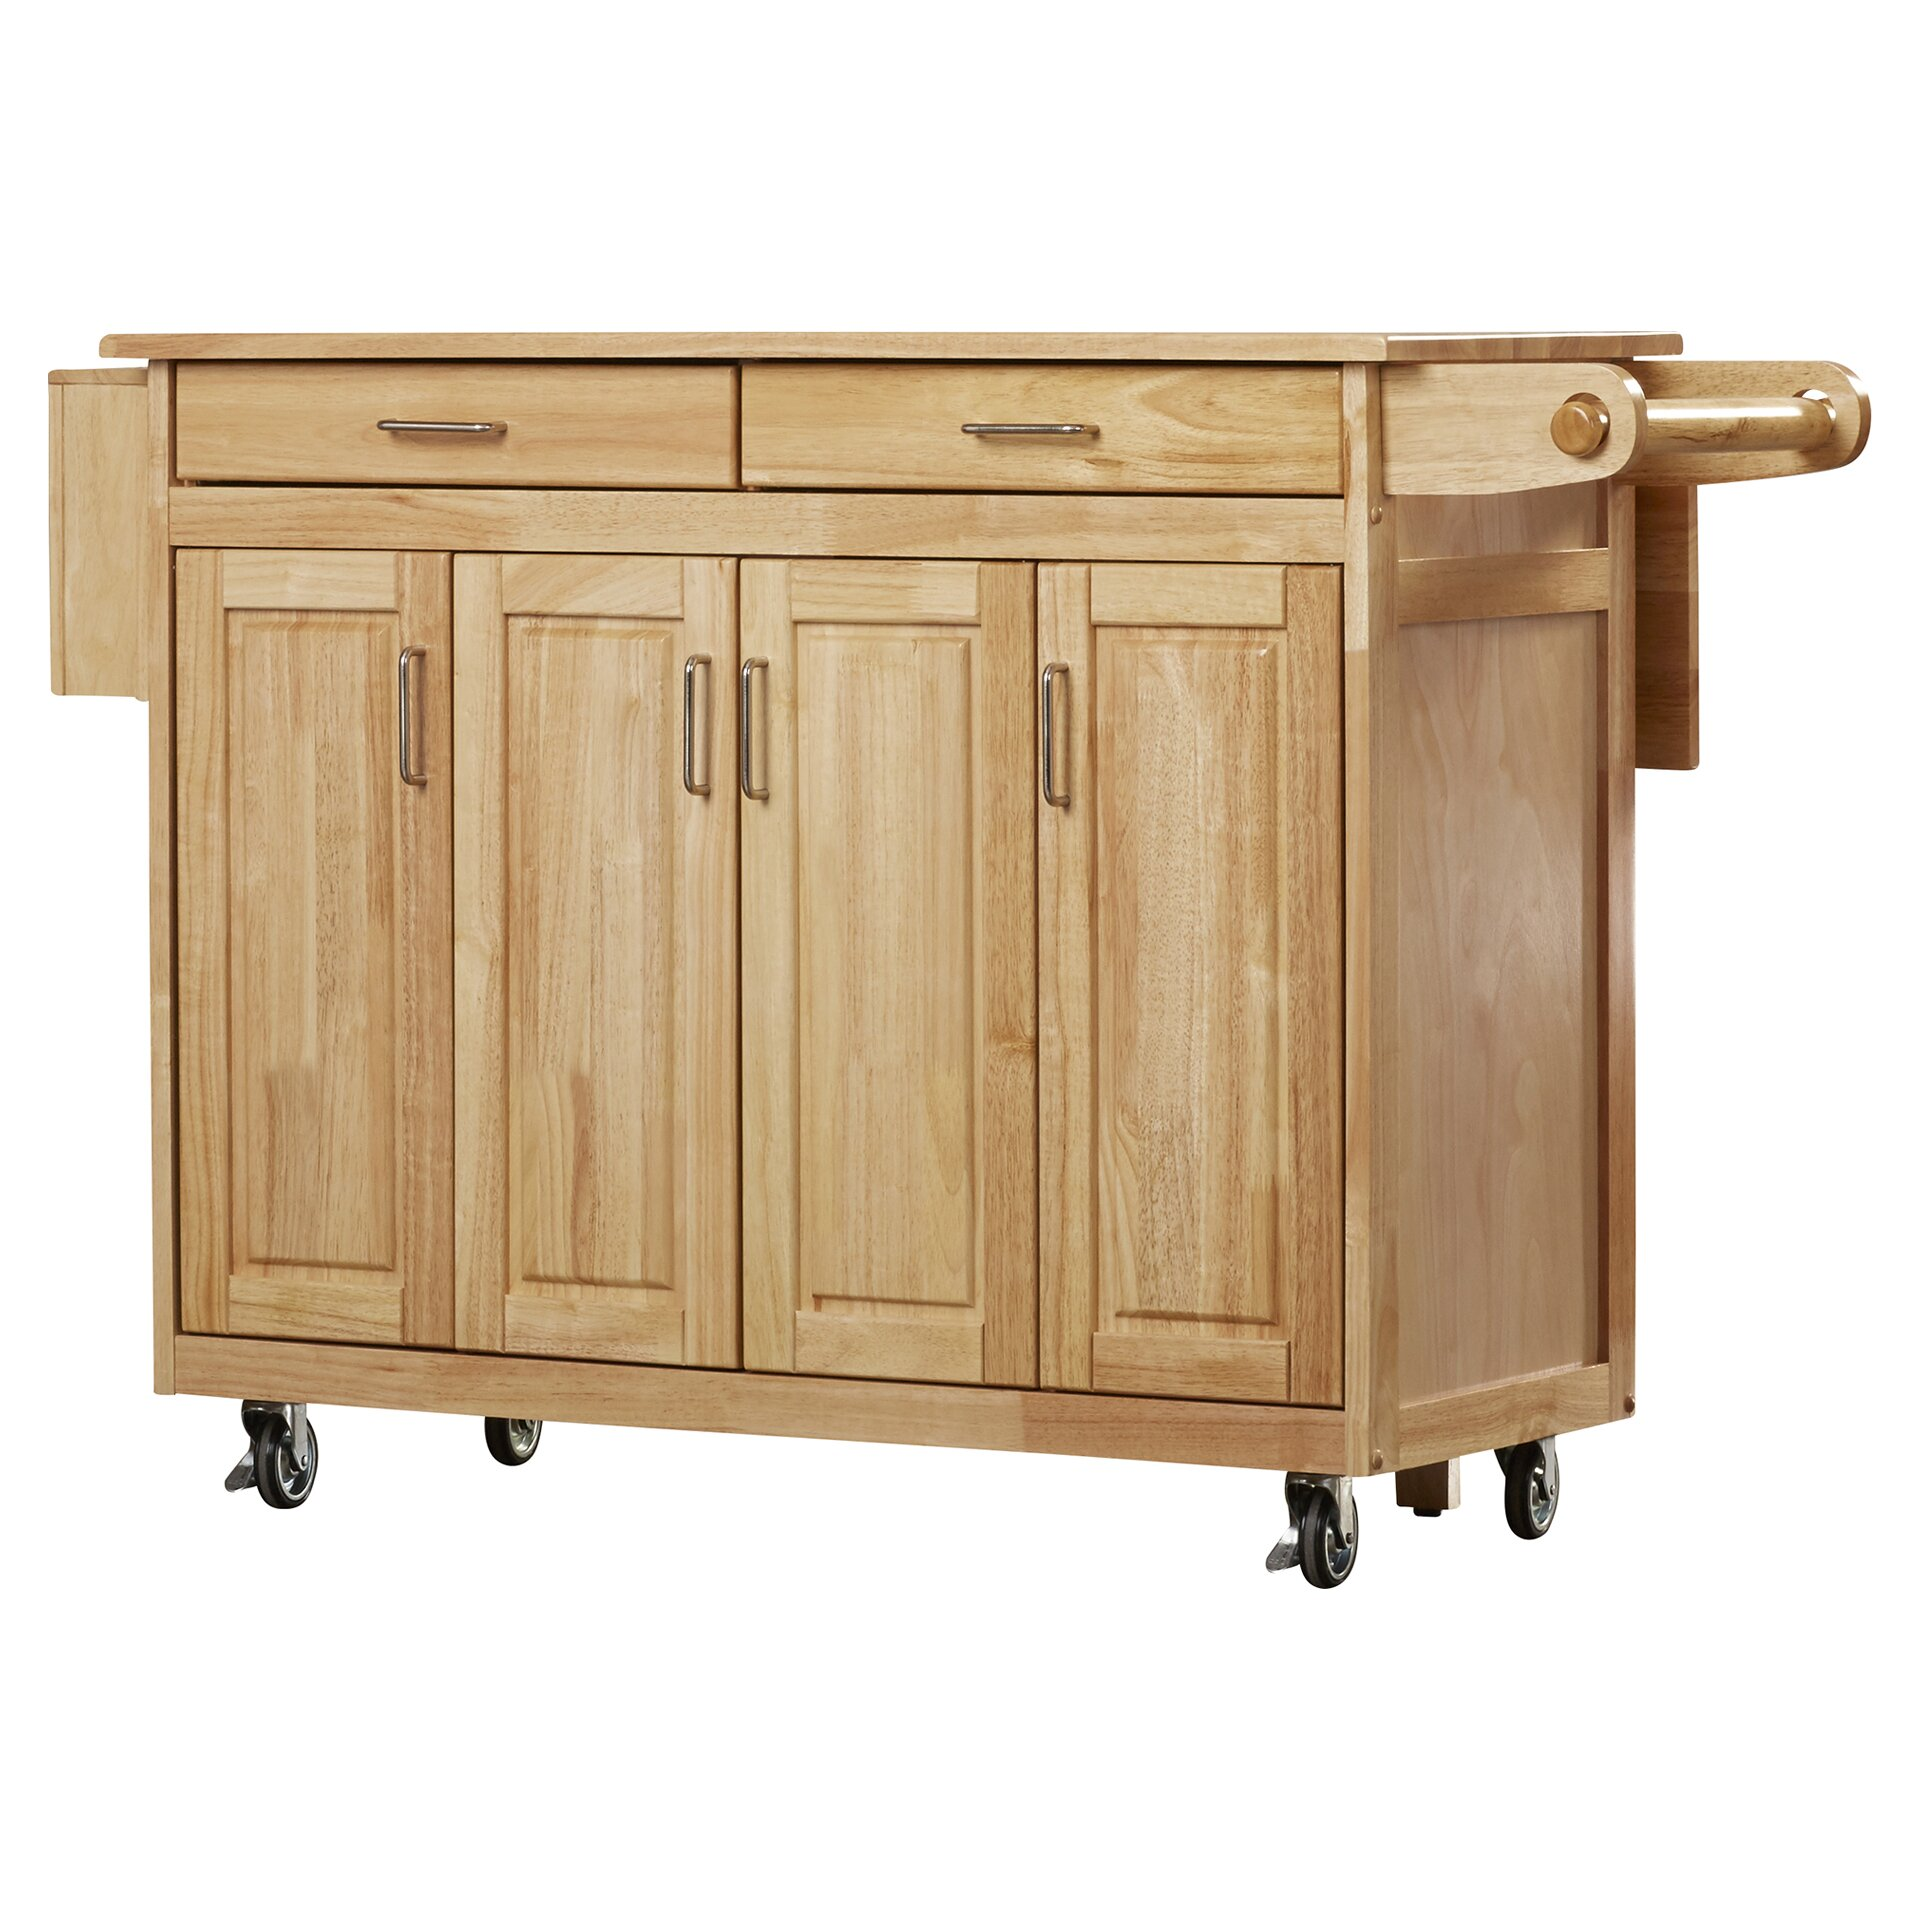 Furniture Kitchen & Dining Furniture Kitchen Islands & Carts August